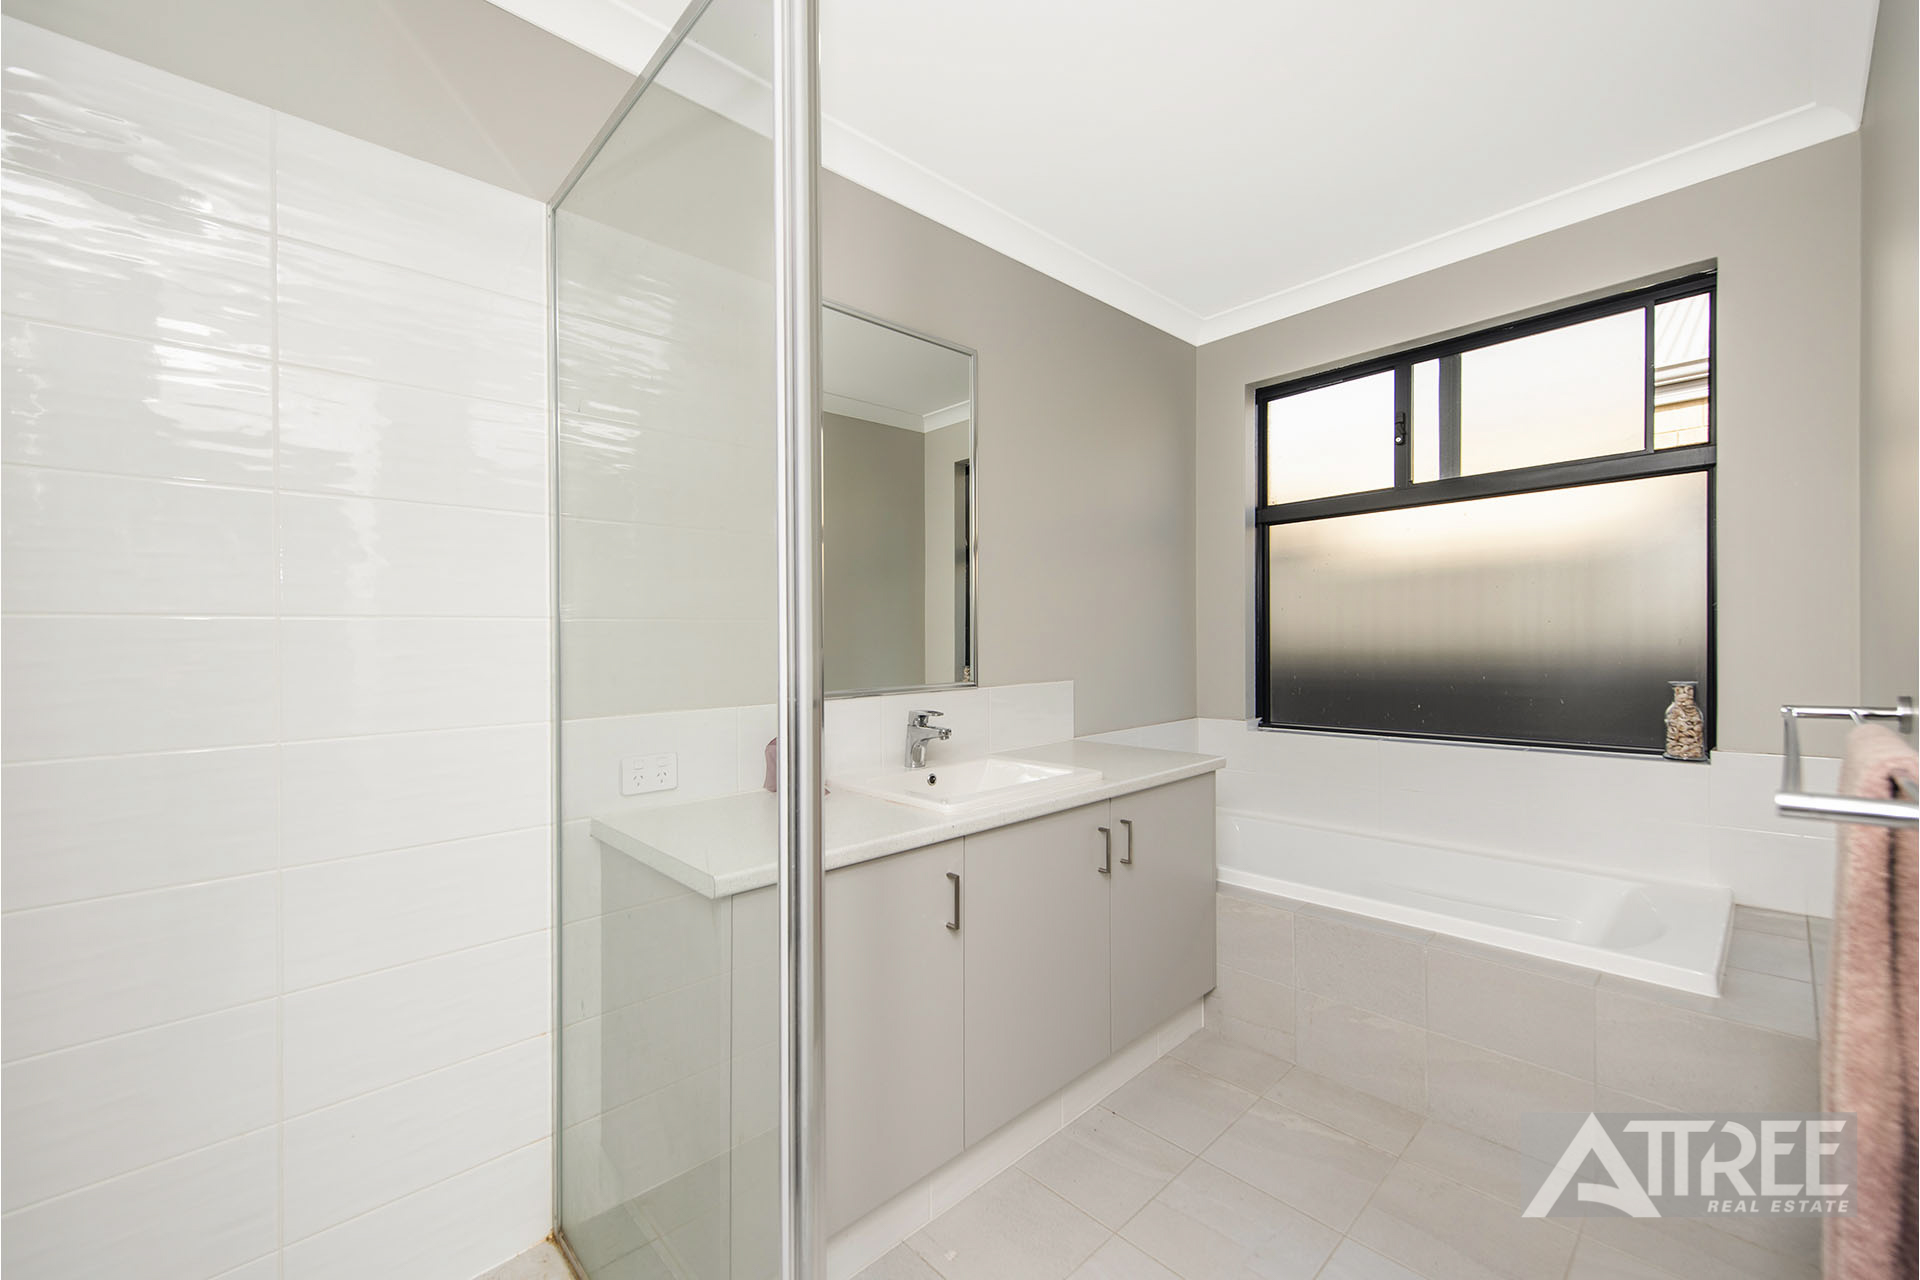 Property for sale in SOUTHERN RIVER, 12 Greenie Chase : Attree Real Estate